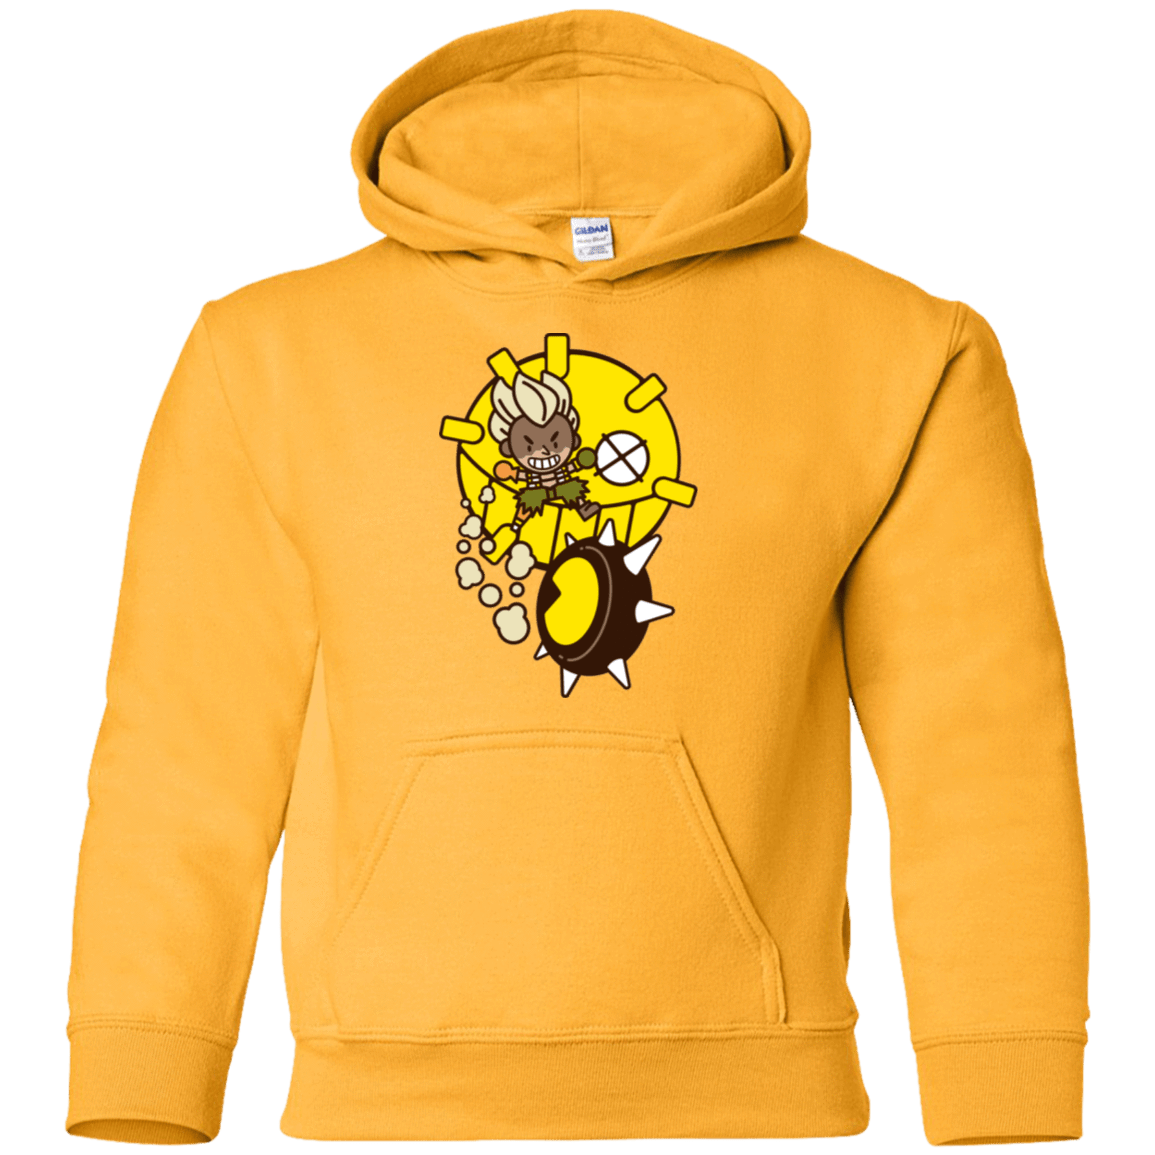 Sweatshirts Gold / YS Fire in the Hole Youth Hoodie